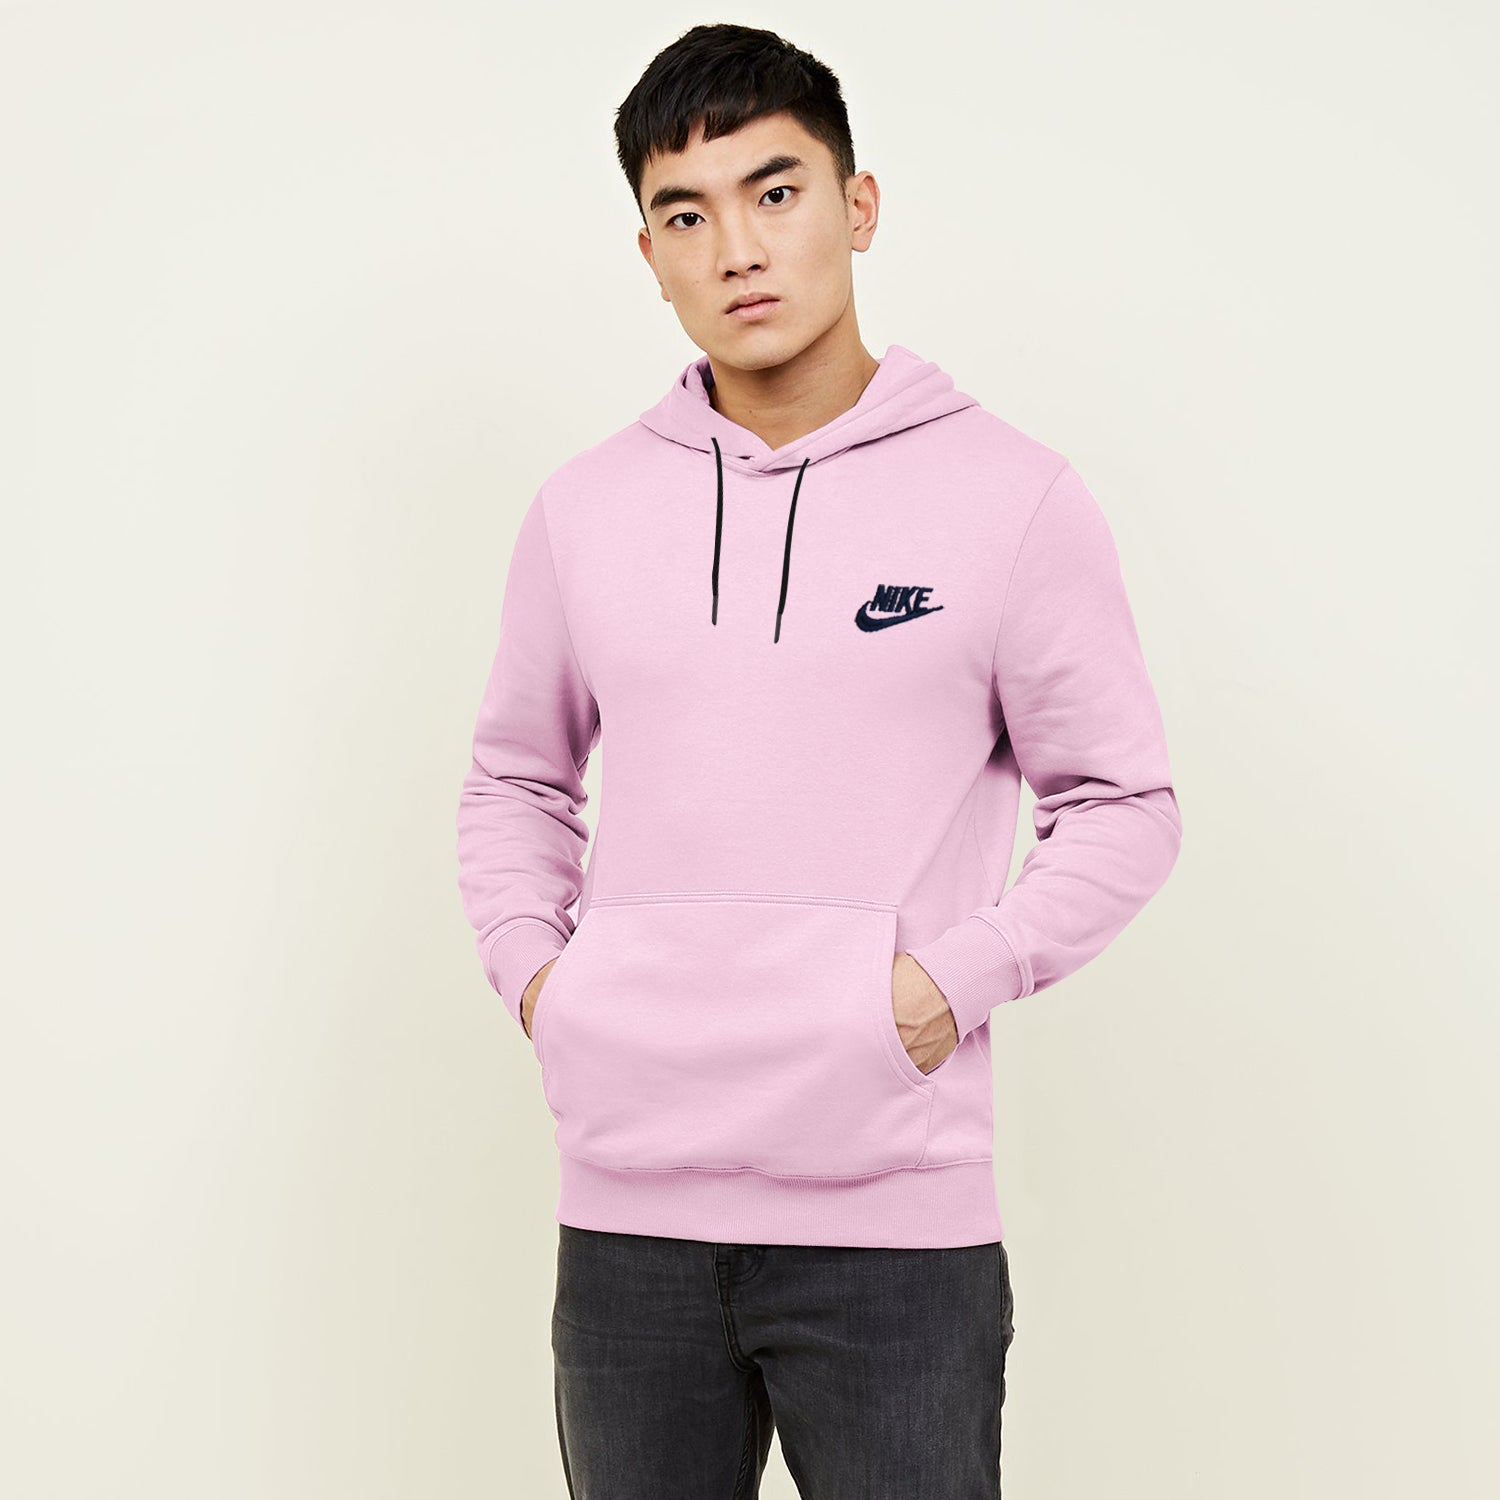 NK Terry Fleece Navy Embroidery Pullover Hoodie For Men-Light Pink-BE10238